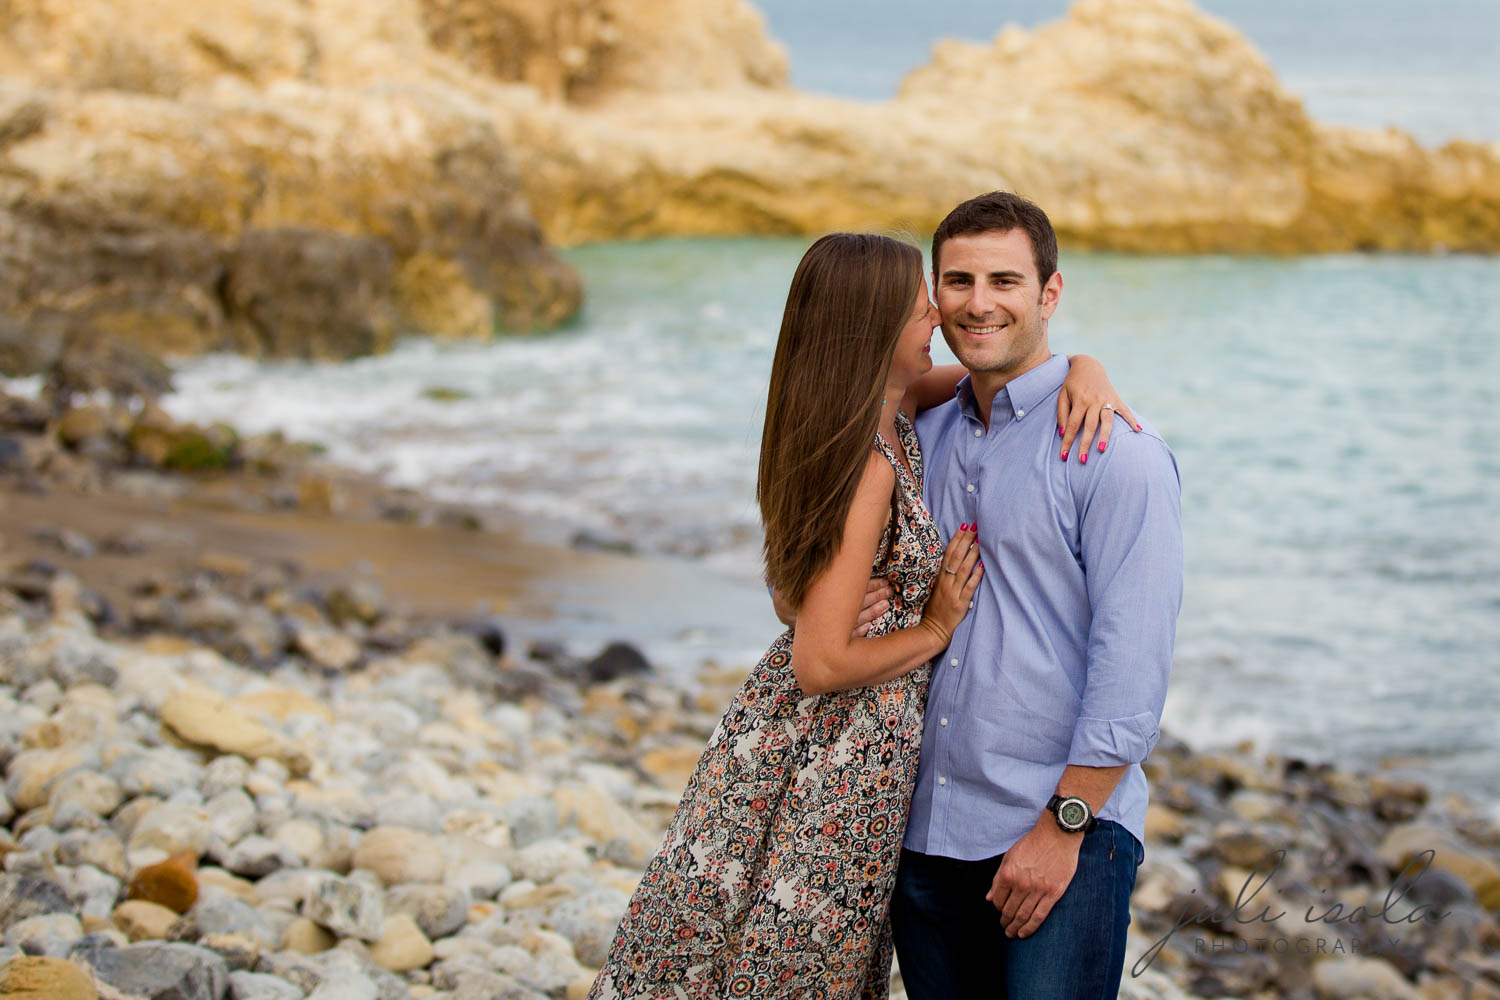 surprise_proposal_san_clemente_photographer (15 of 19).jpg